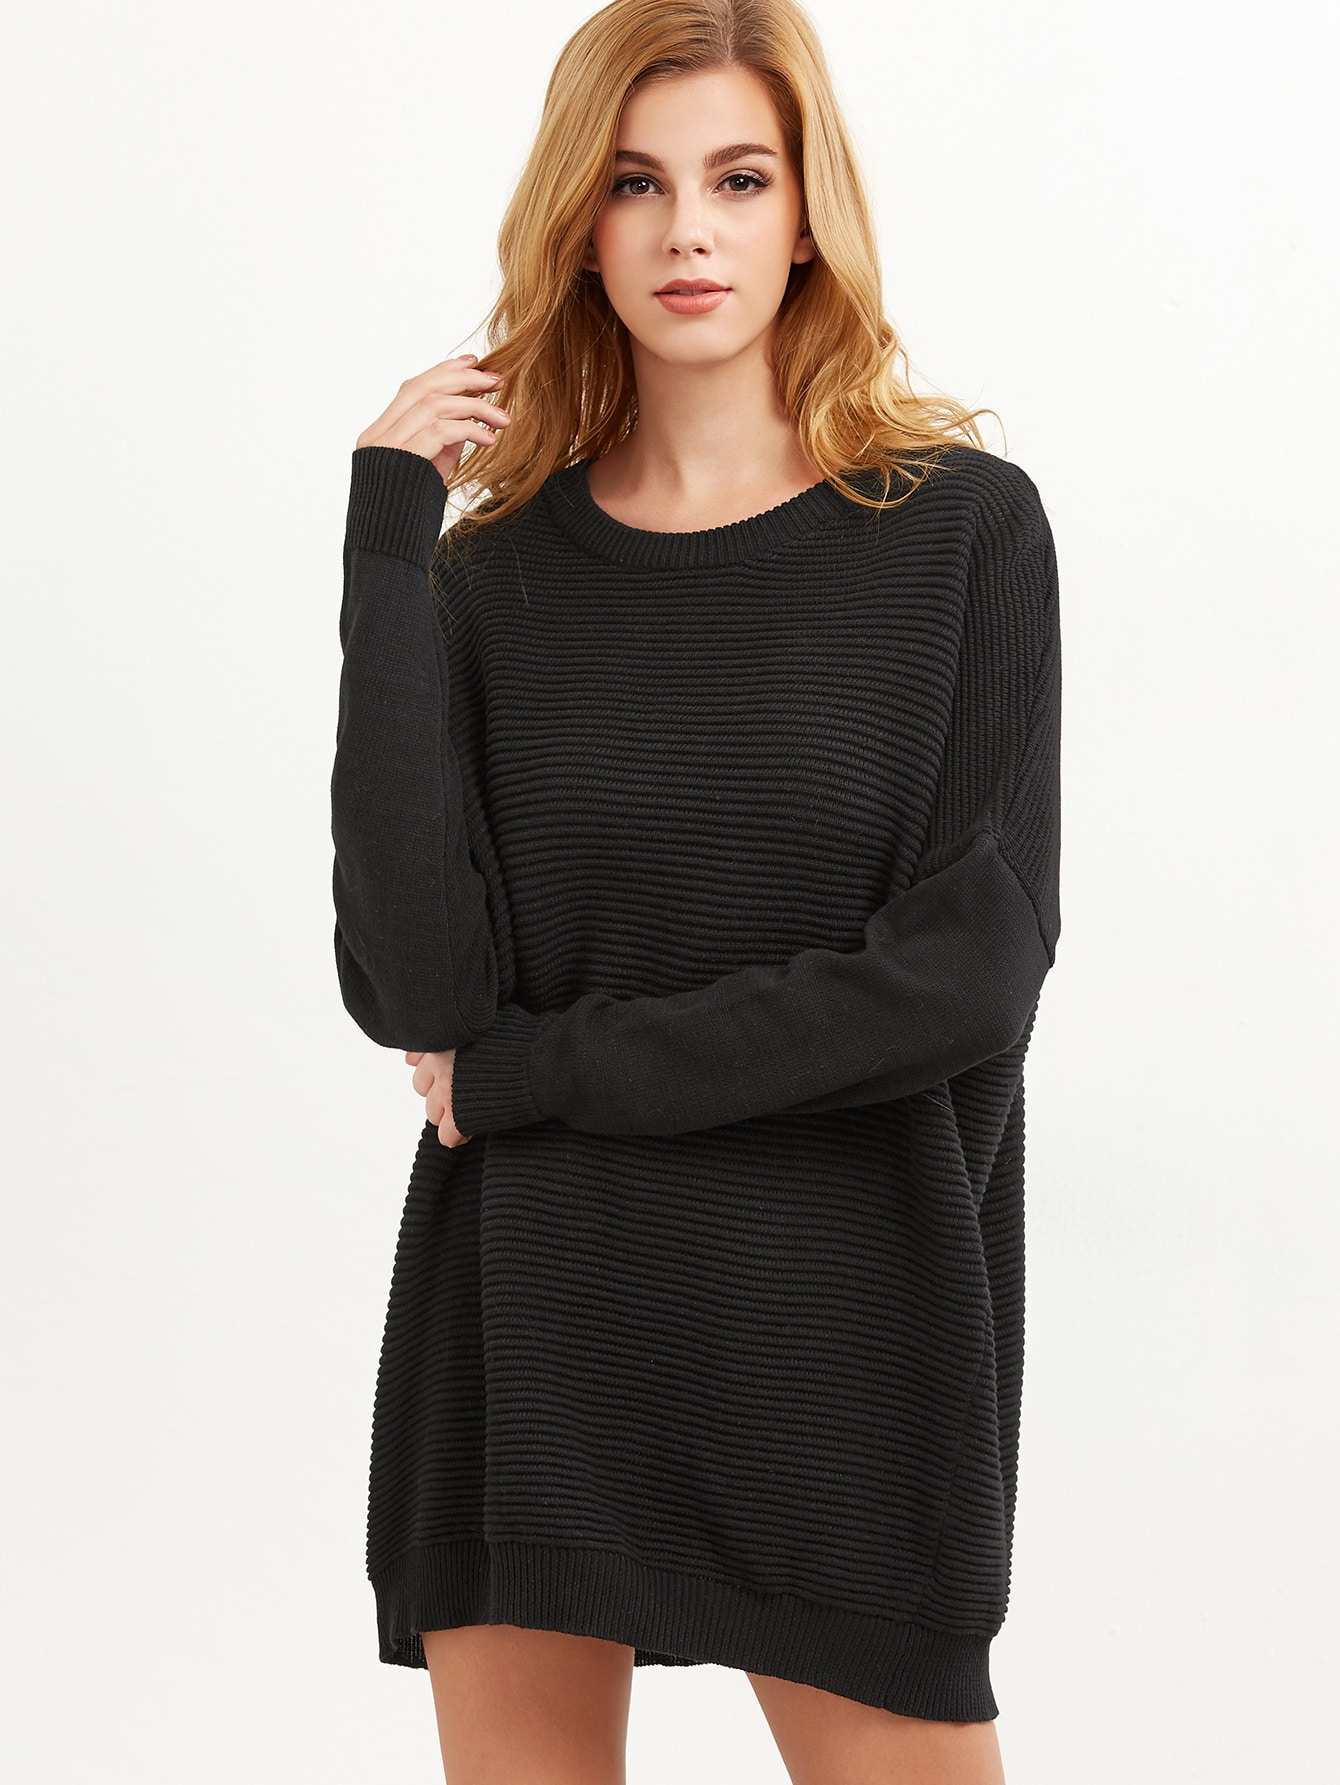 Black Ribbed Knit Drop Shoulder Oversized Sweater sweater161107460